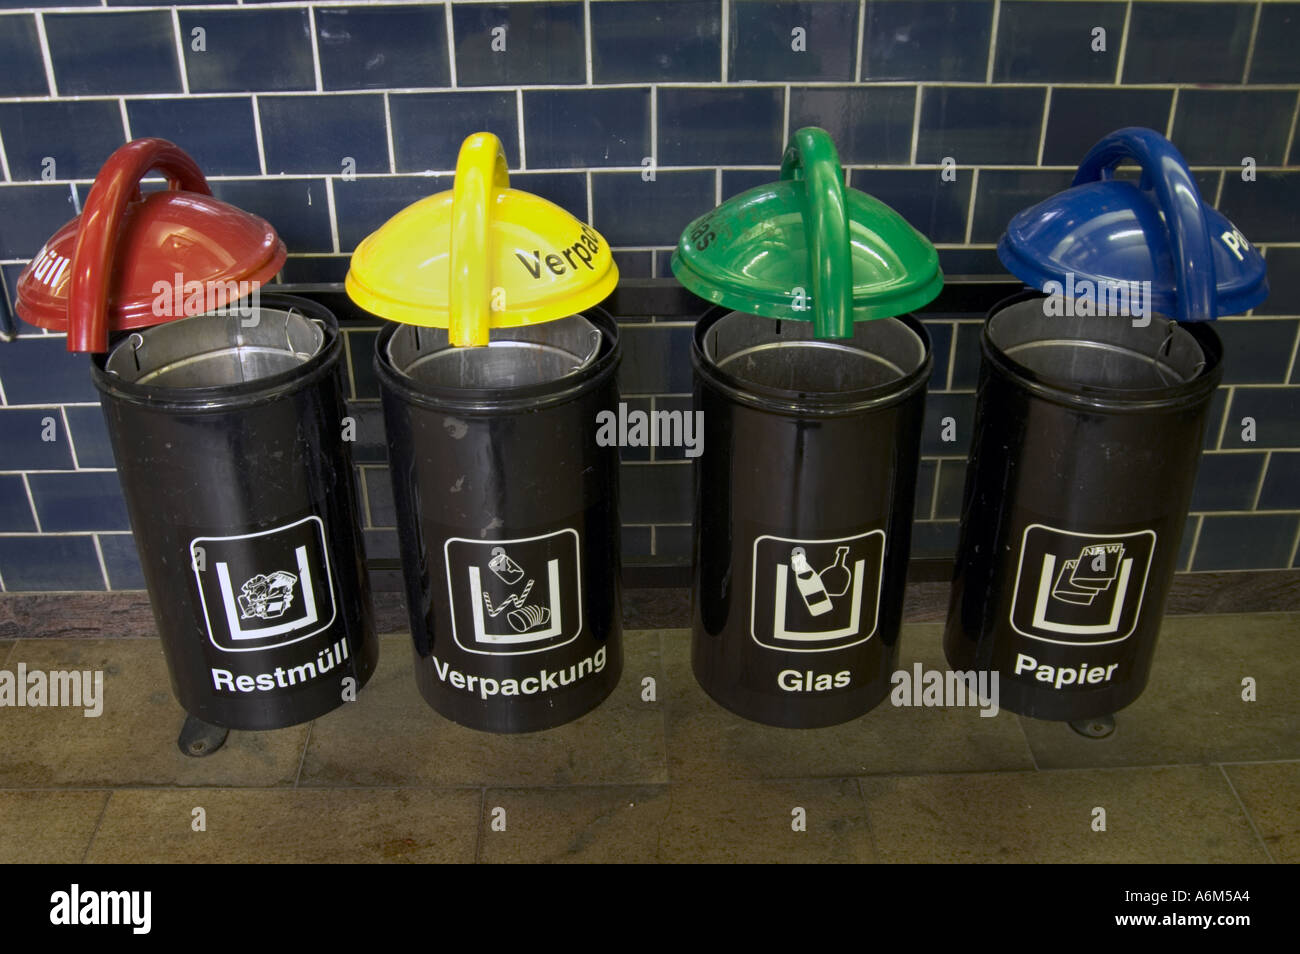 Color Coded Public Recycling Bins In German Train Station Berlin